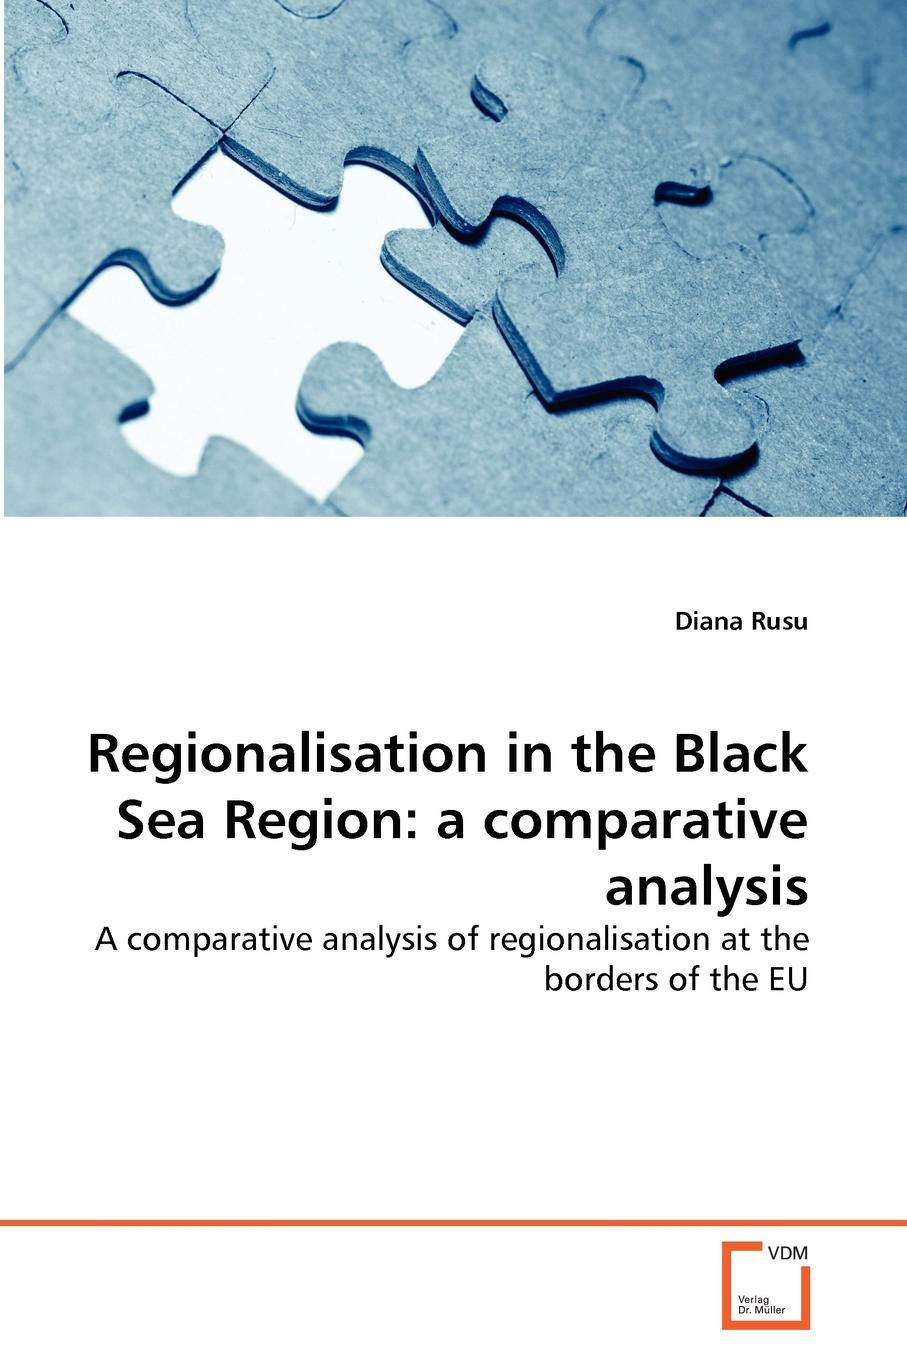 Diana Rusu Regionalisation in the Black Sea Region. a comparative analysis fishes in the sea pattern floor area rug